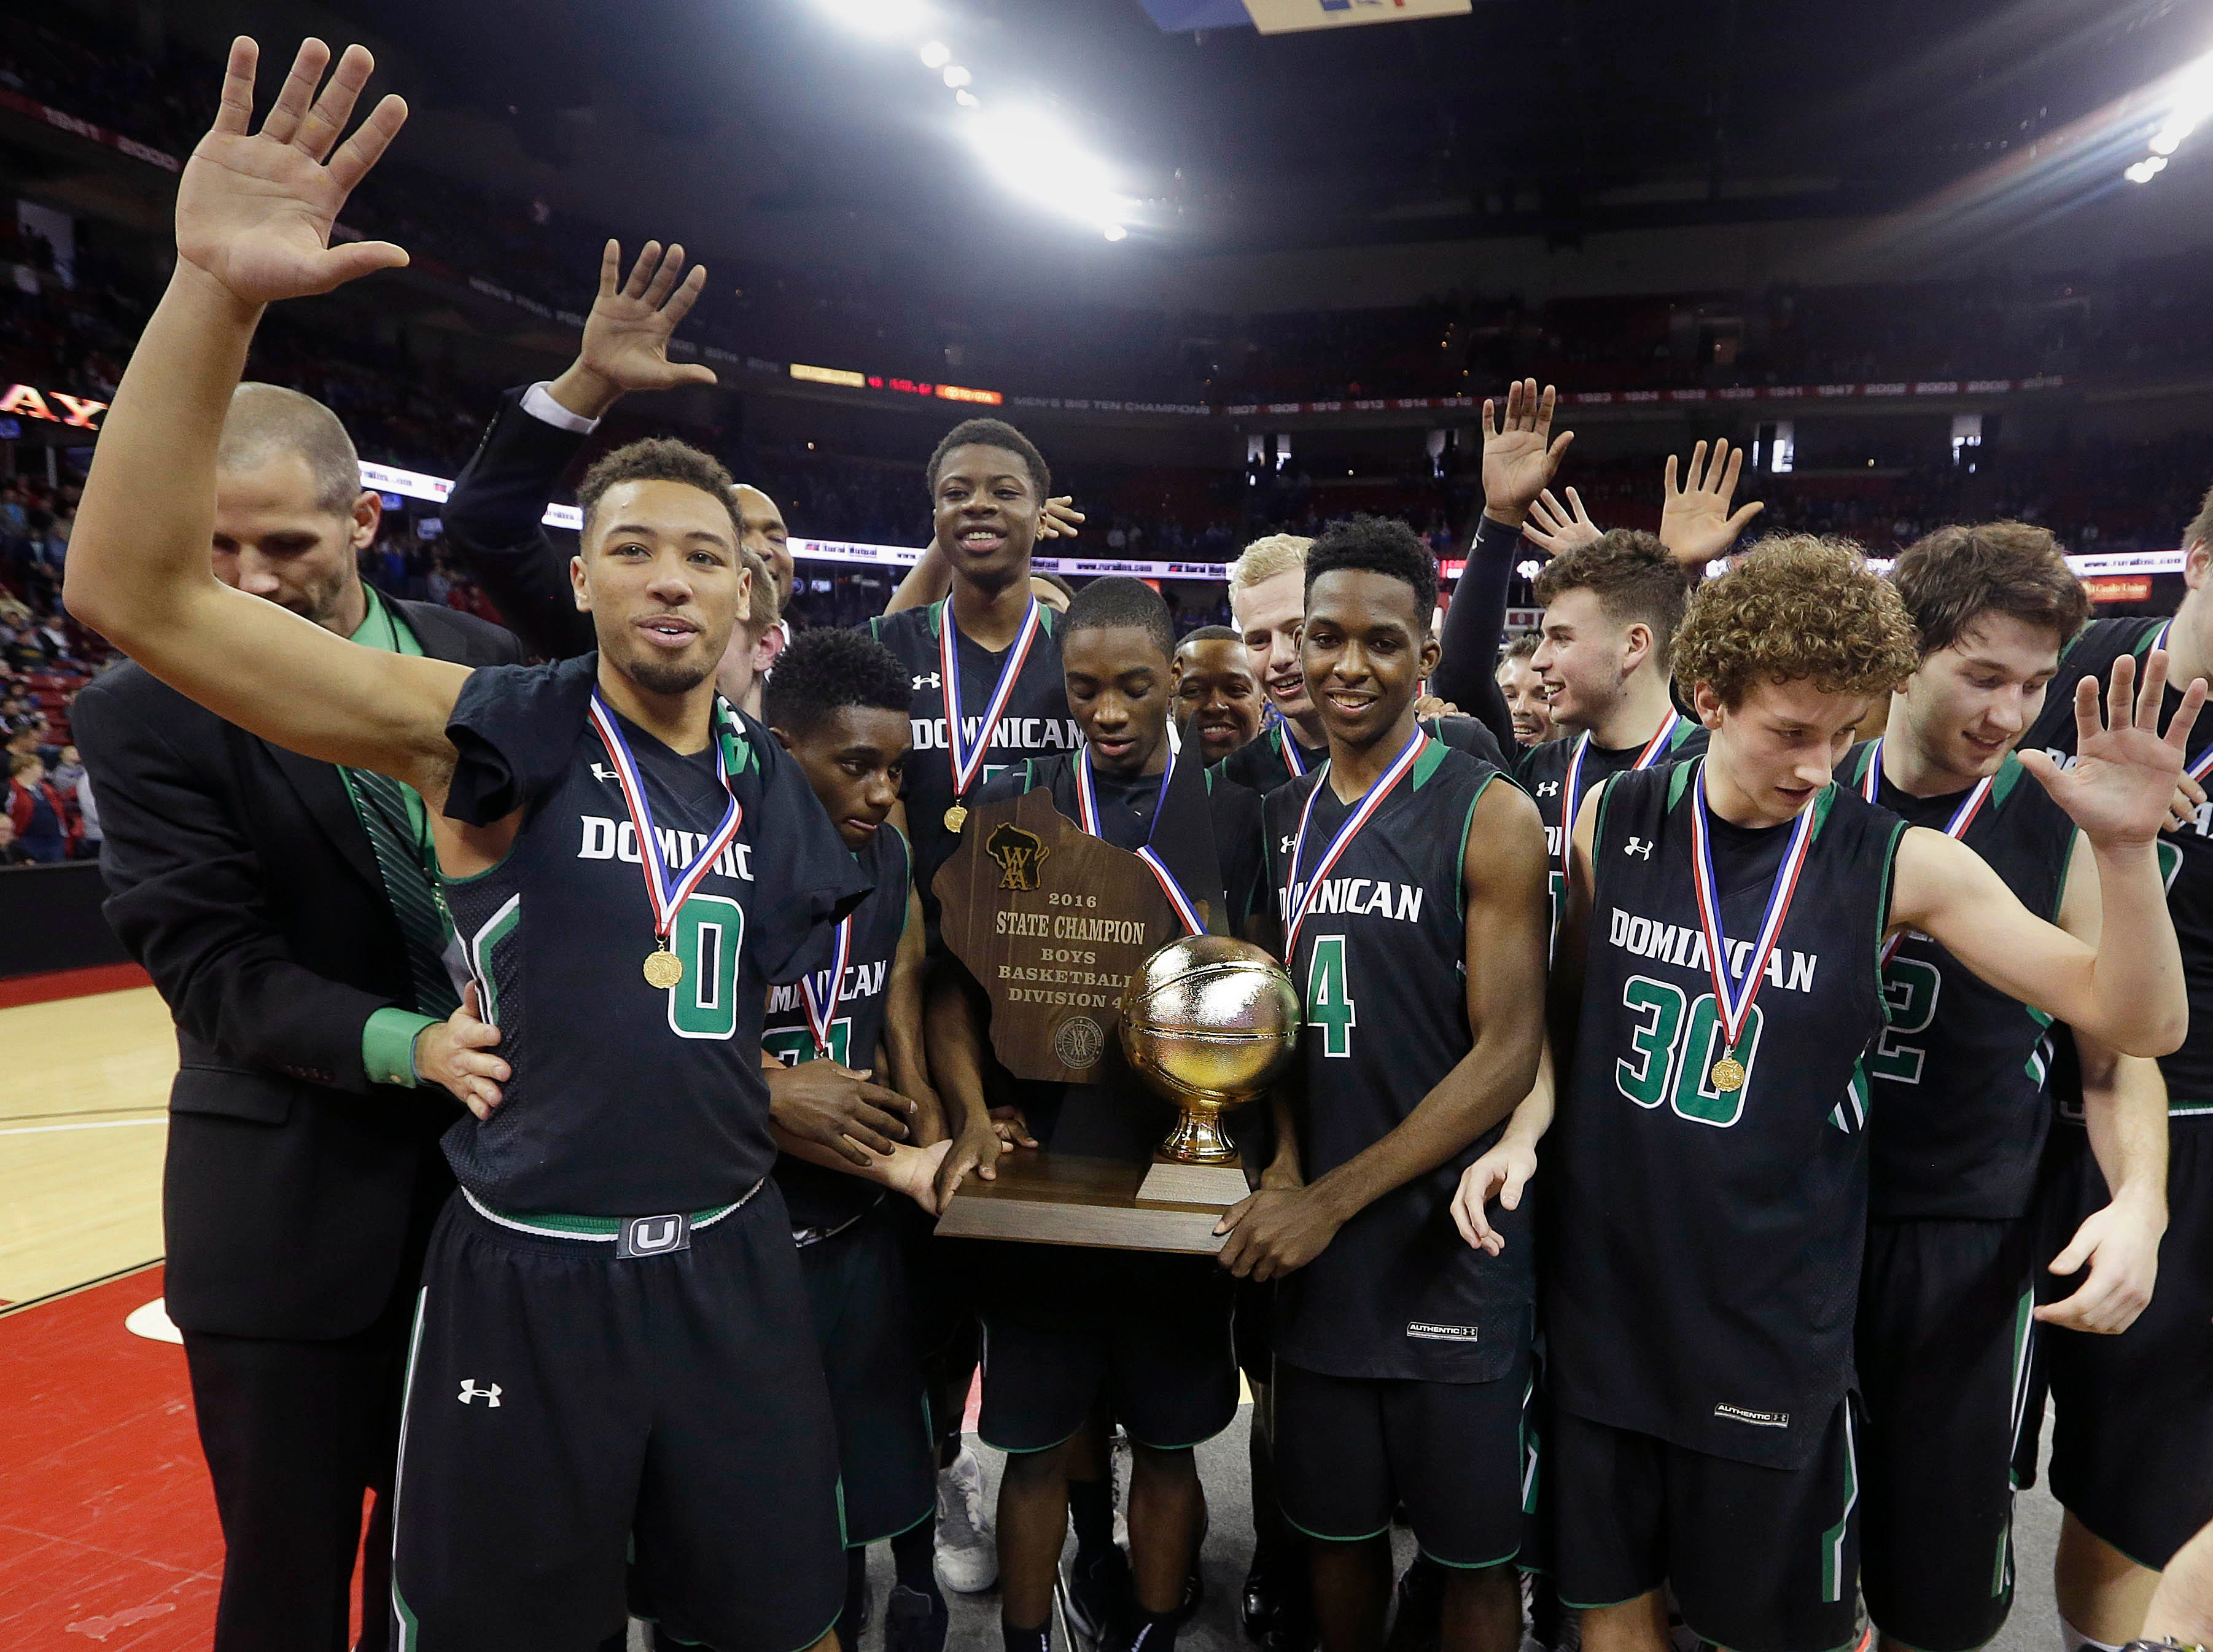 Dominican shows off their trophy after after Dominican's 62-43 win over Cameron in 2016 to win their fifth  D4 Championship in the WIAA State Boys Basketball Tournament